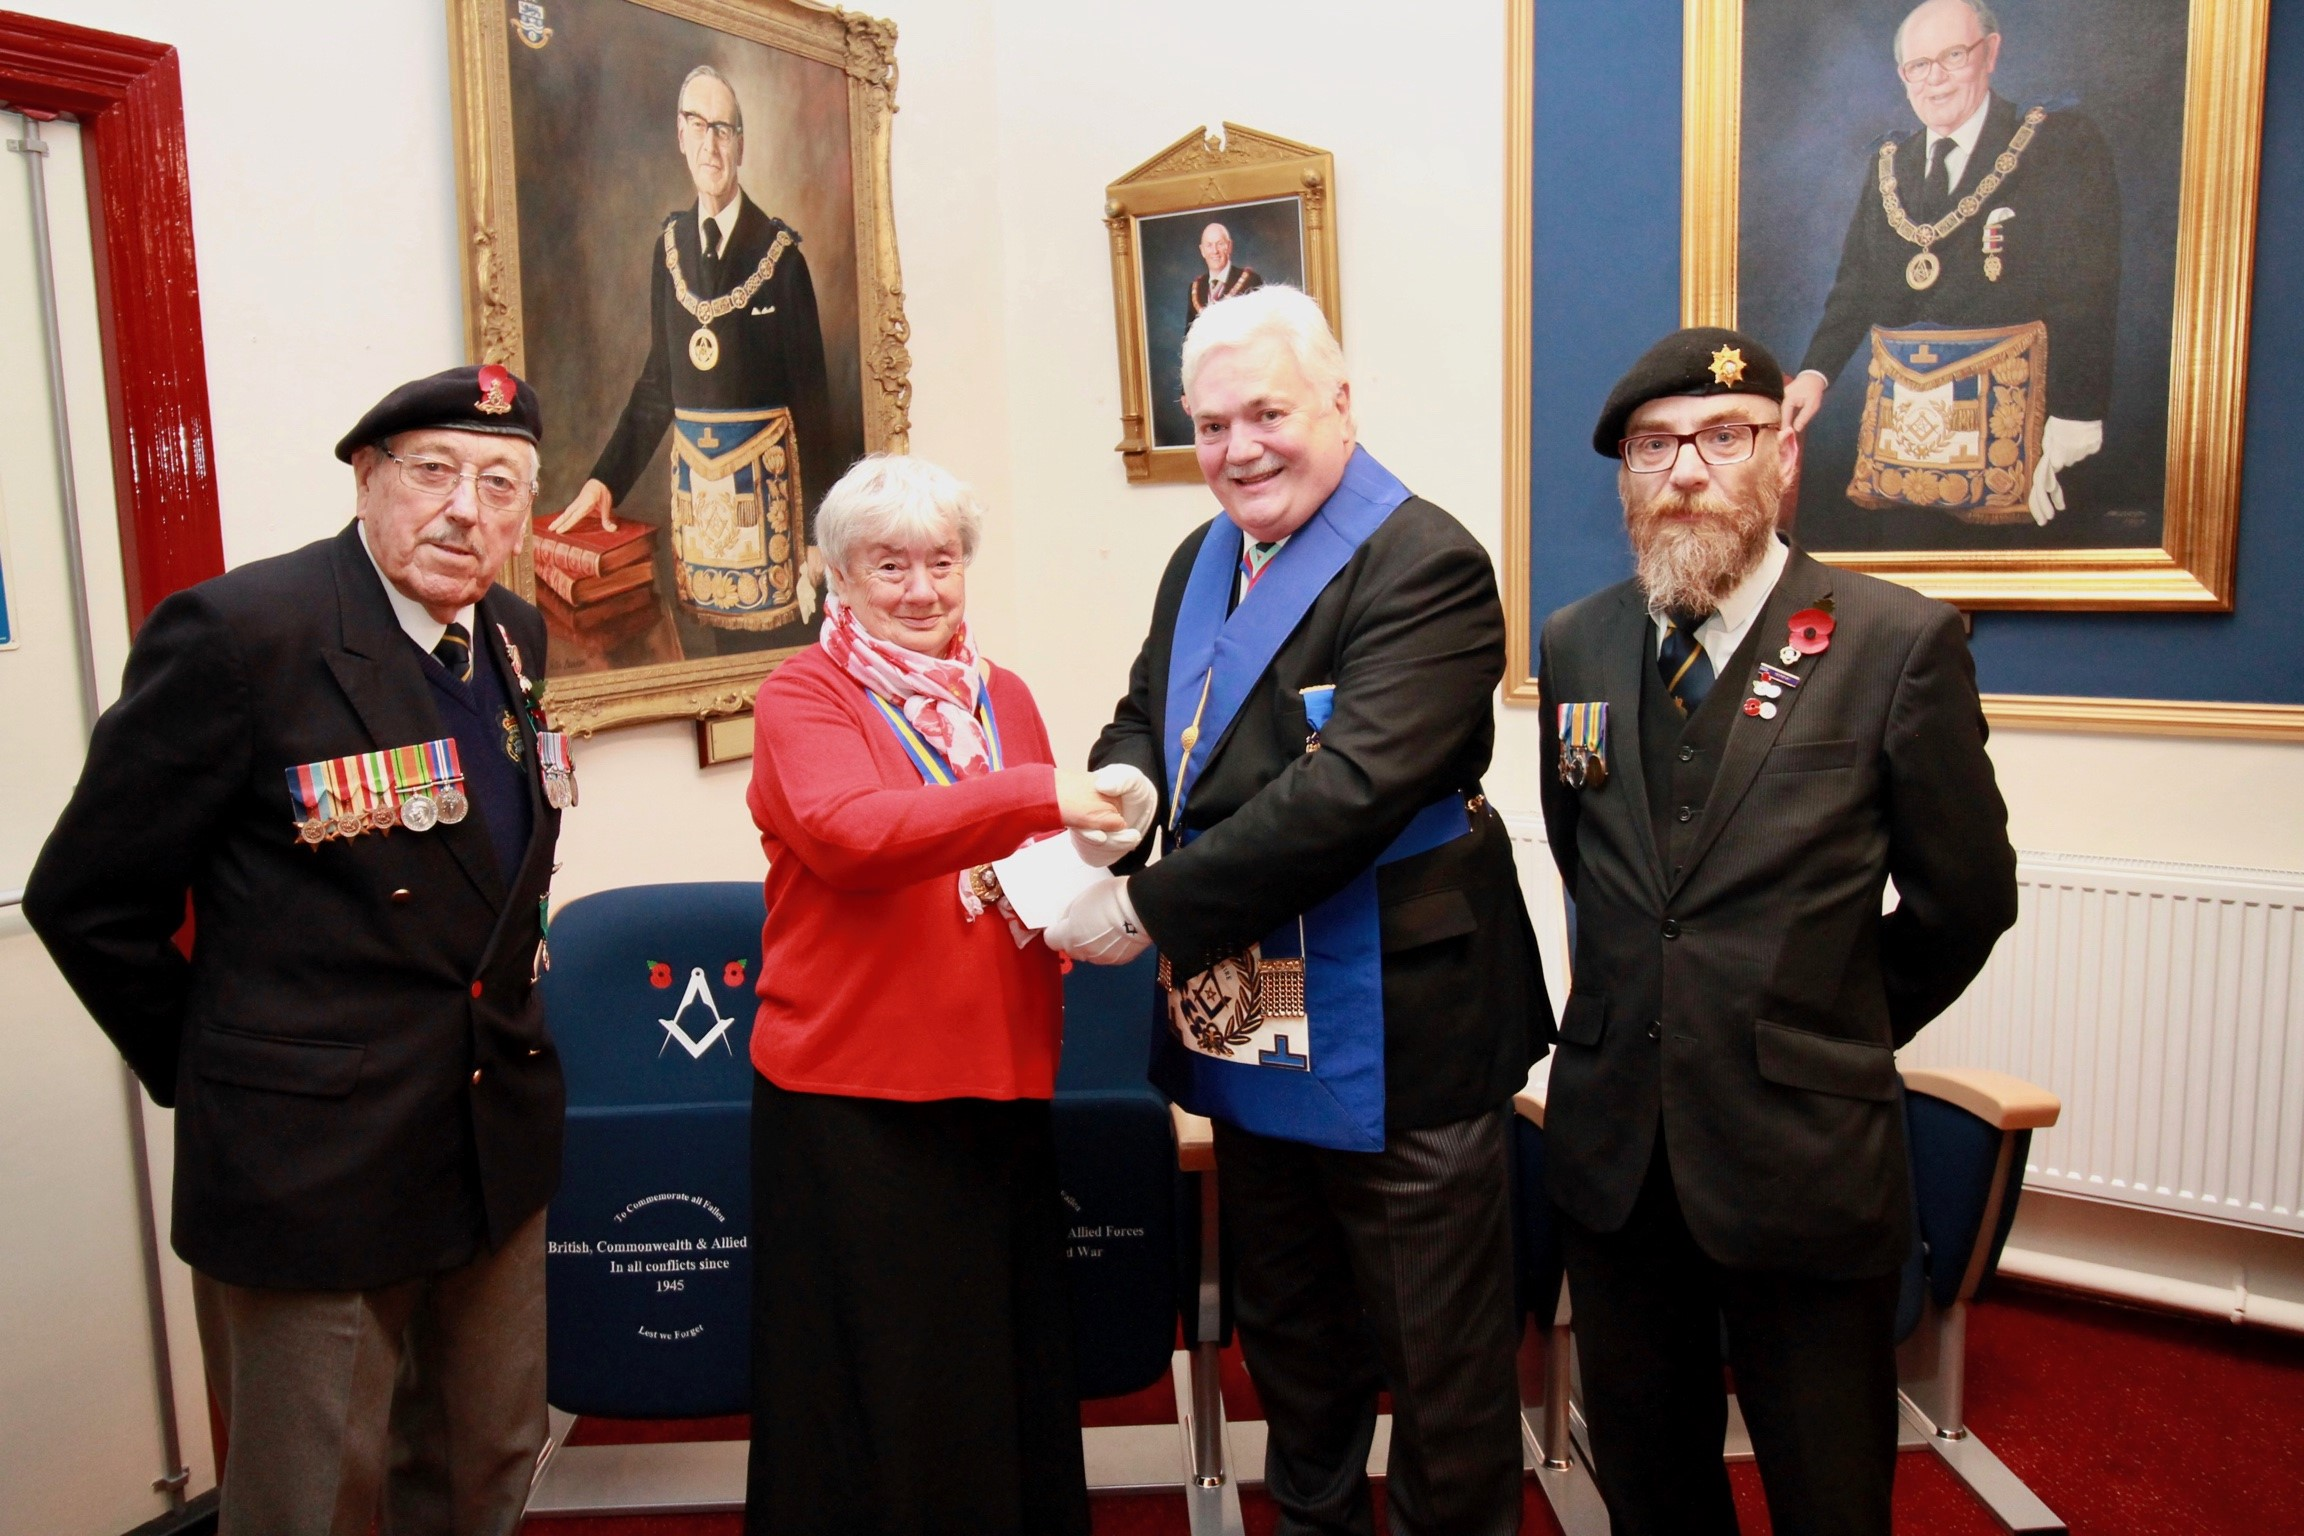 Donation to the Royal British Legion